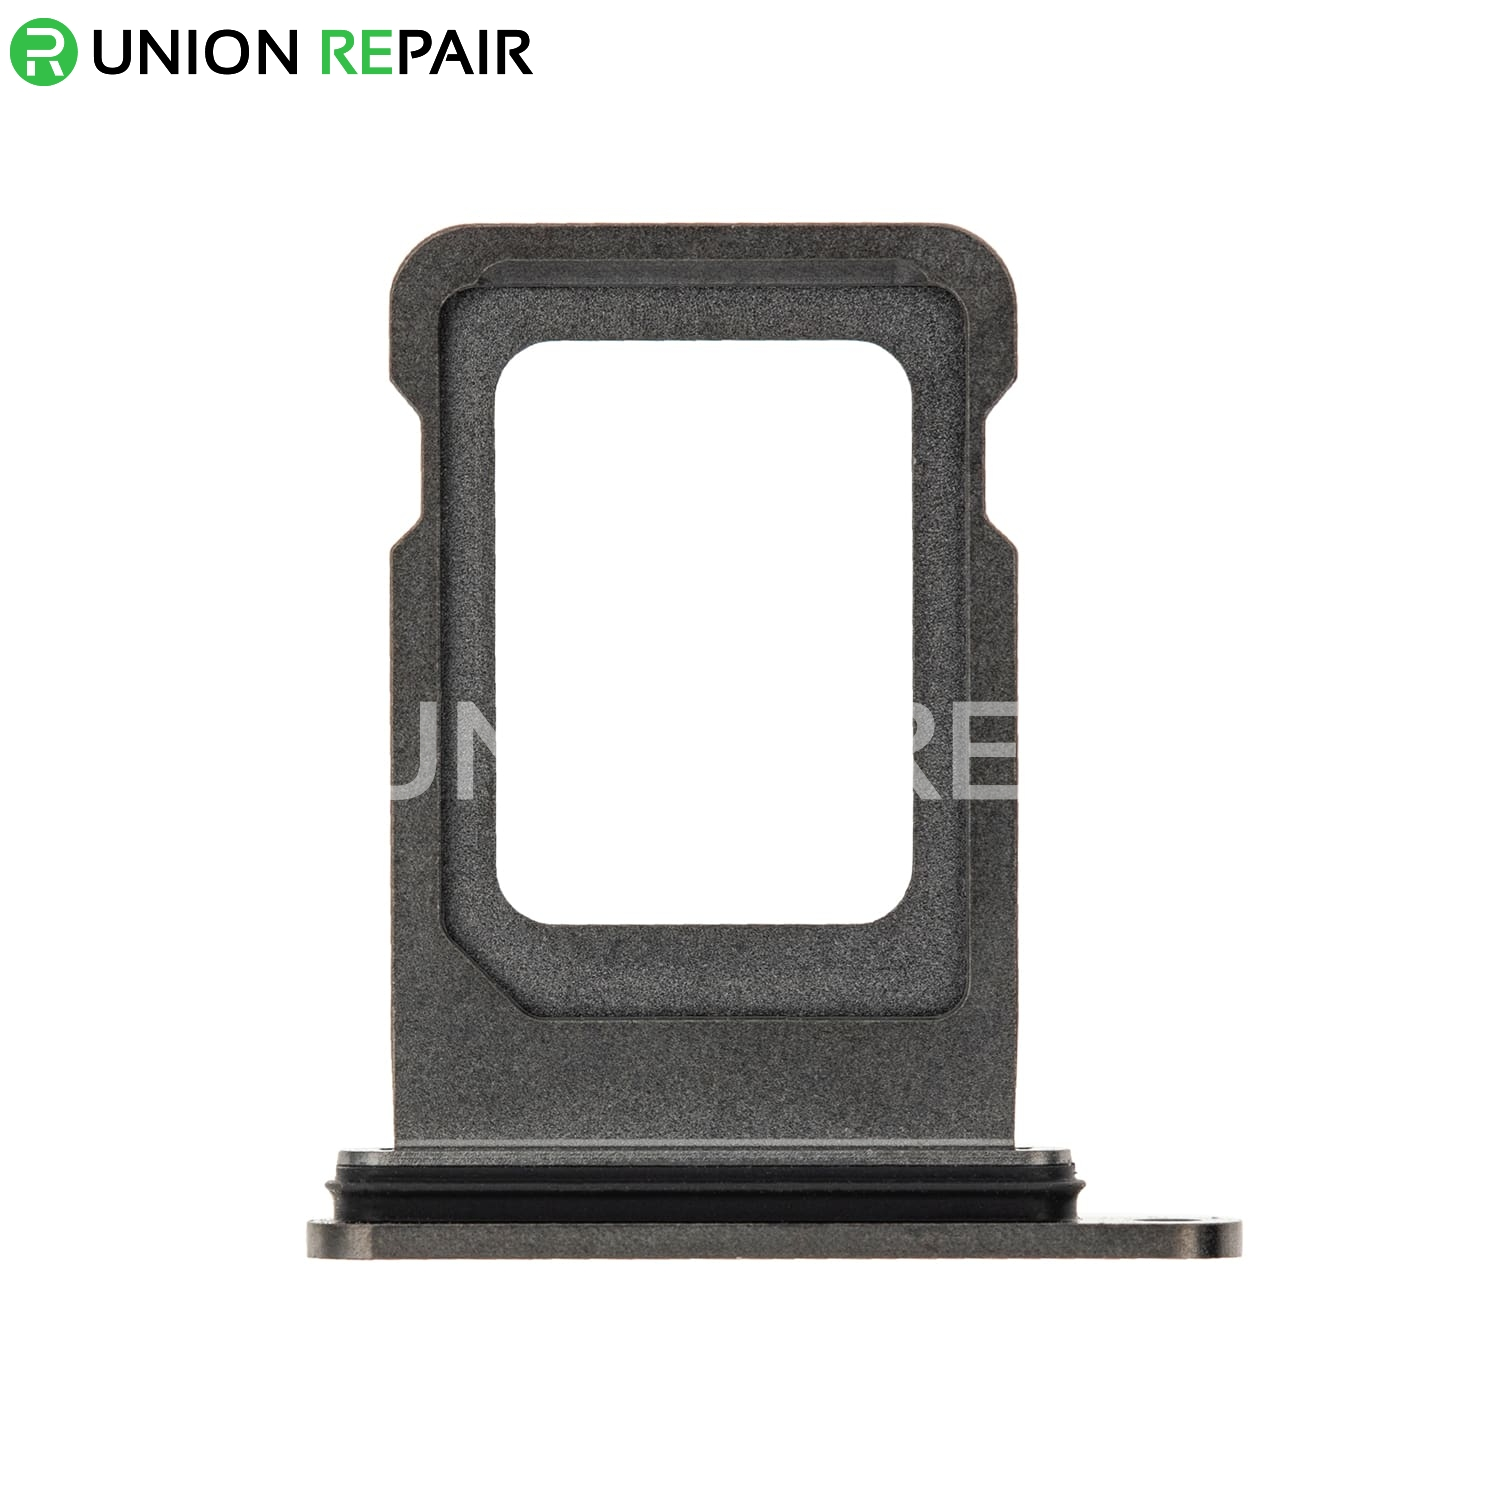 Replacement for iPhone 12 Pro/12 Pro Max Single SIM Card Tray - Graphite